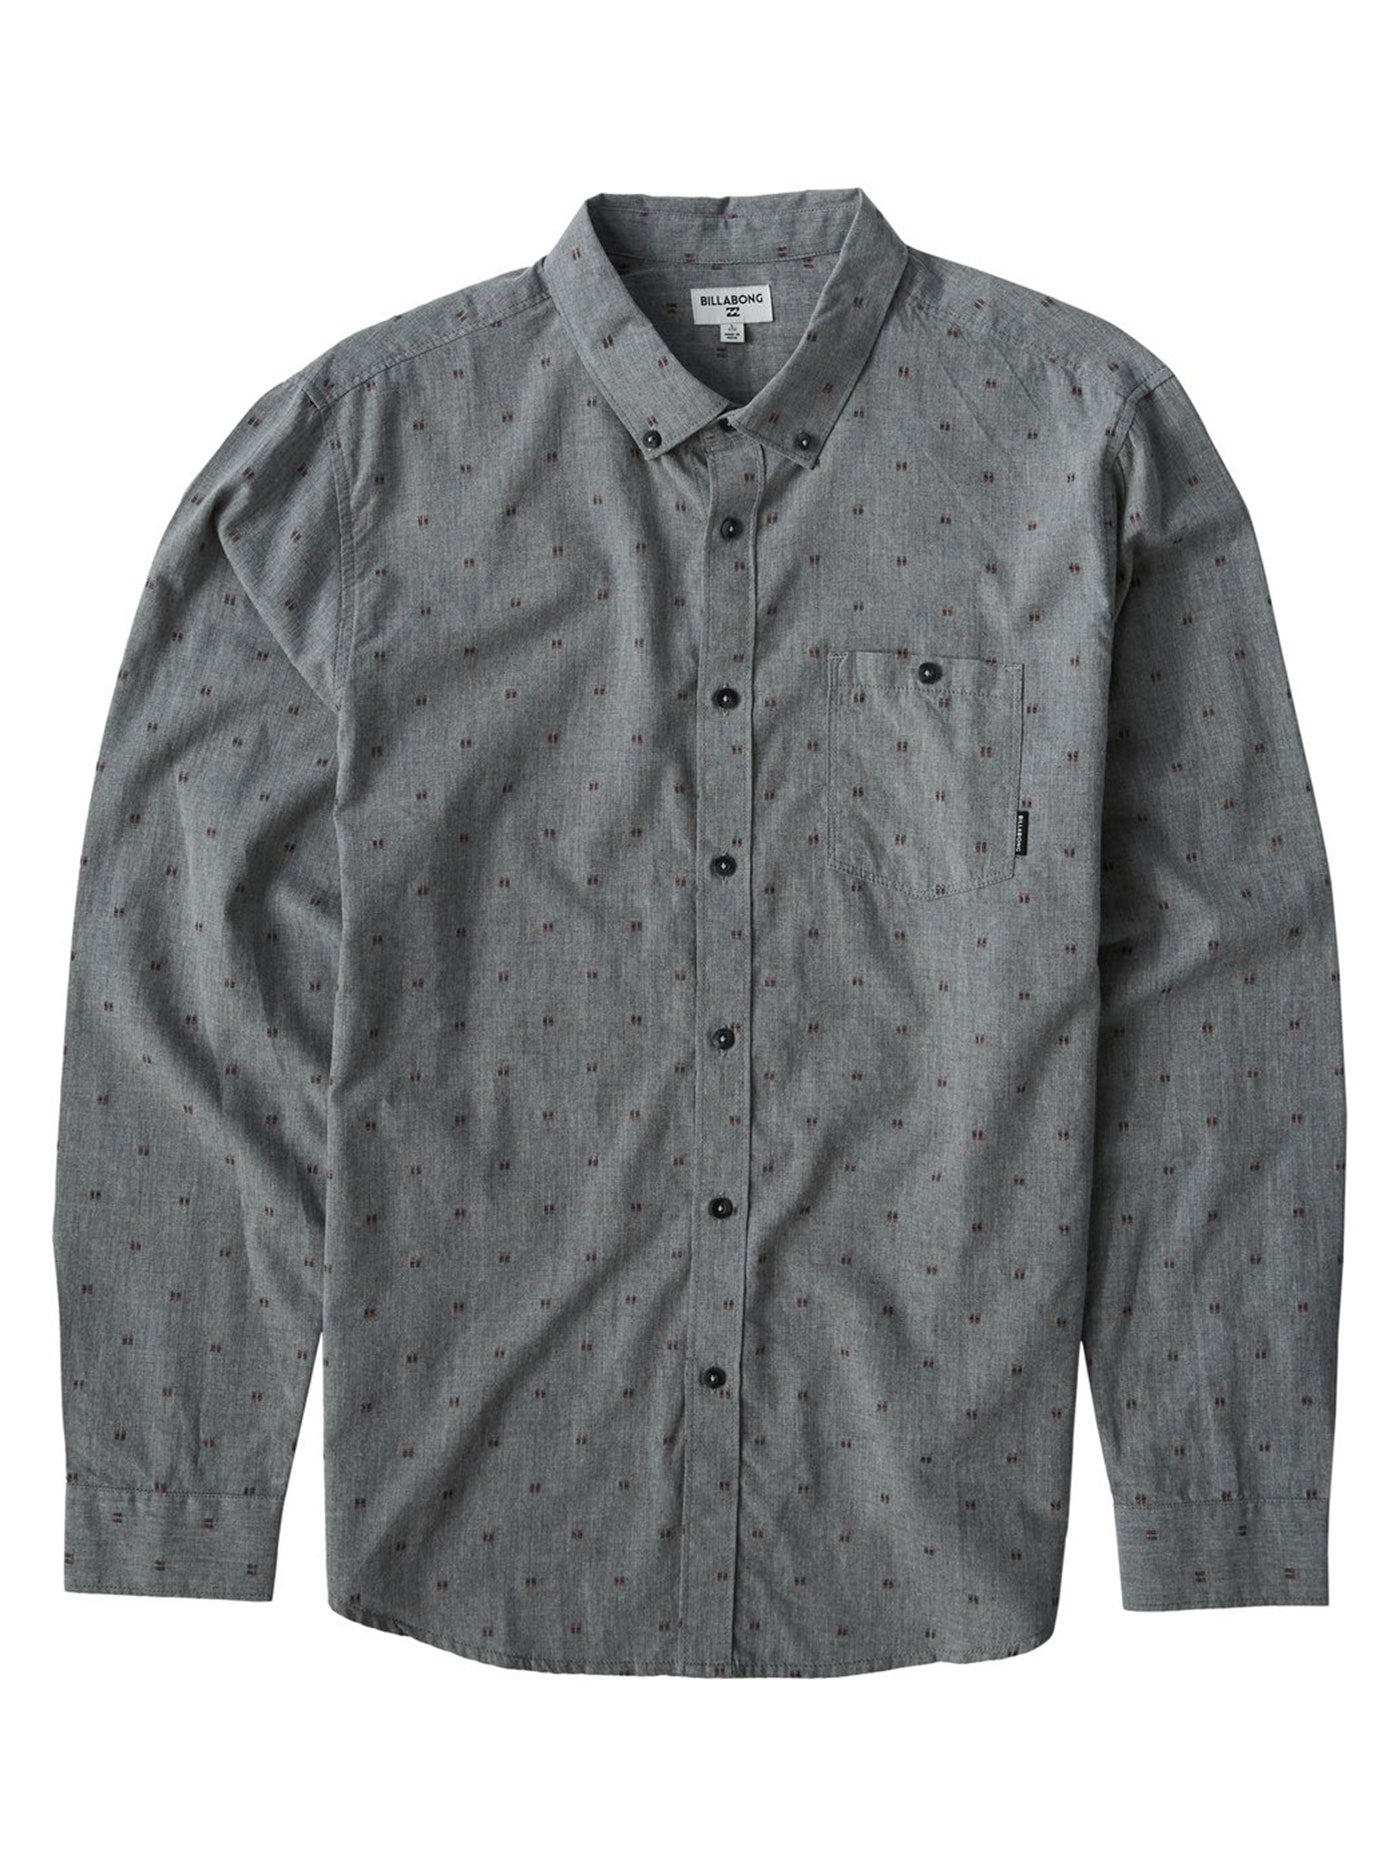 All Day Jacquard Long Sleeve Buttondown Shirt